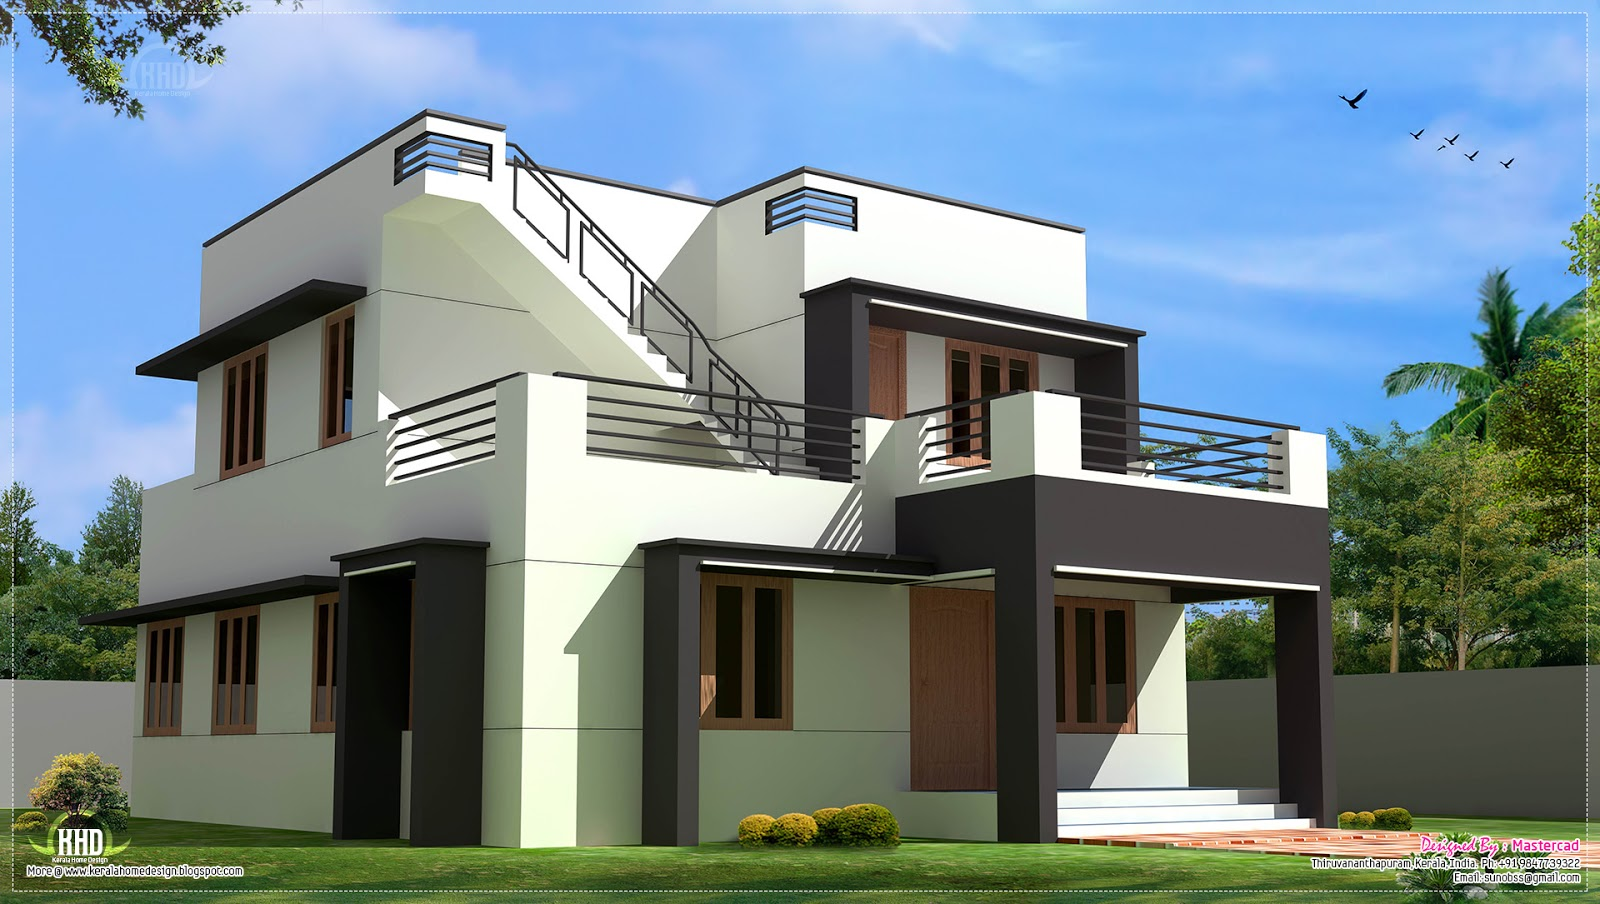 Modern house design in 1700 kerala home design for Free indian house designs